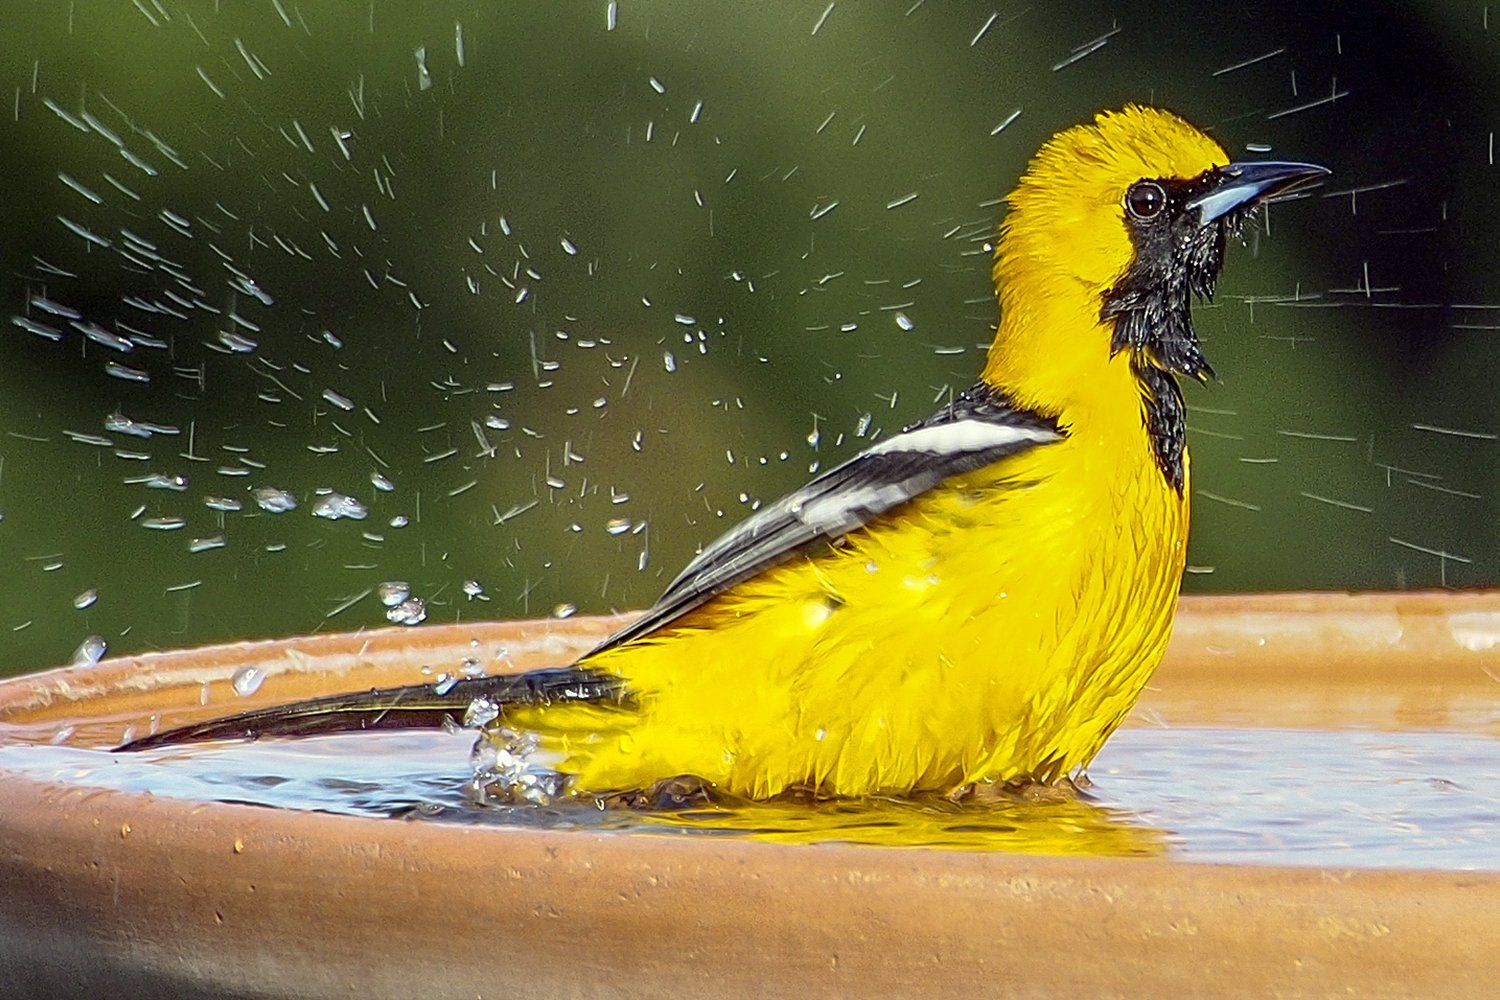 How To Attract Birds With Water